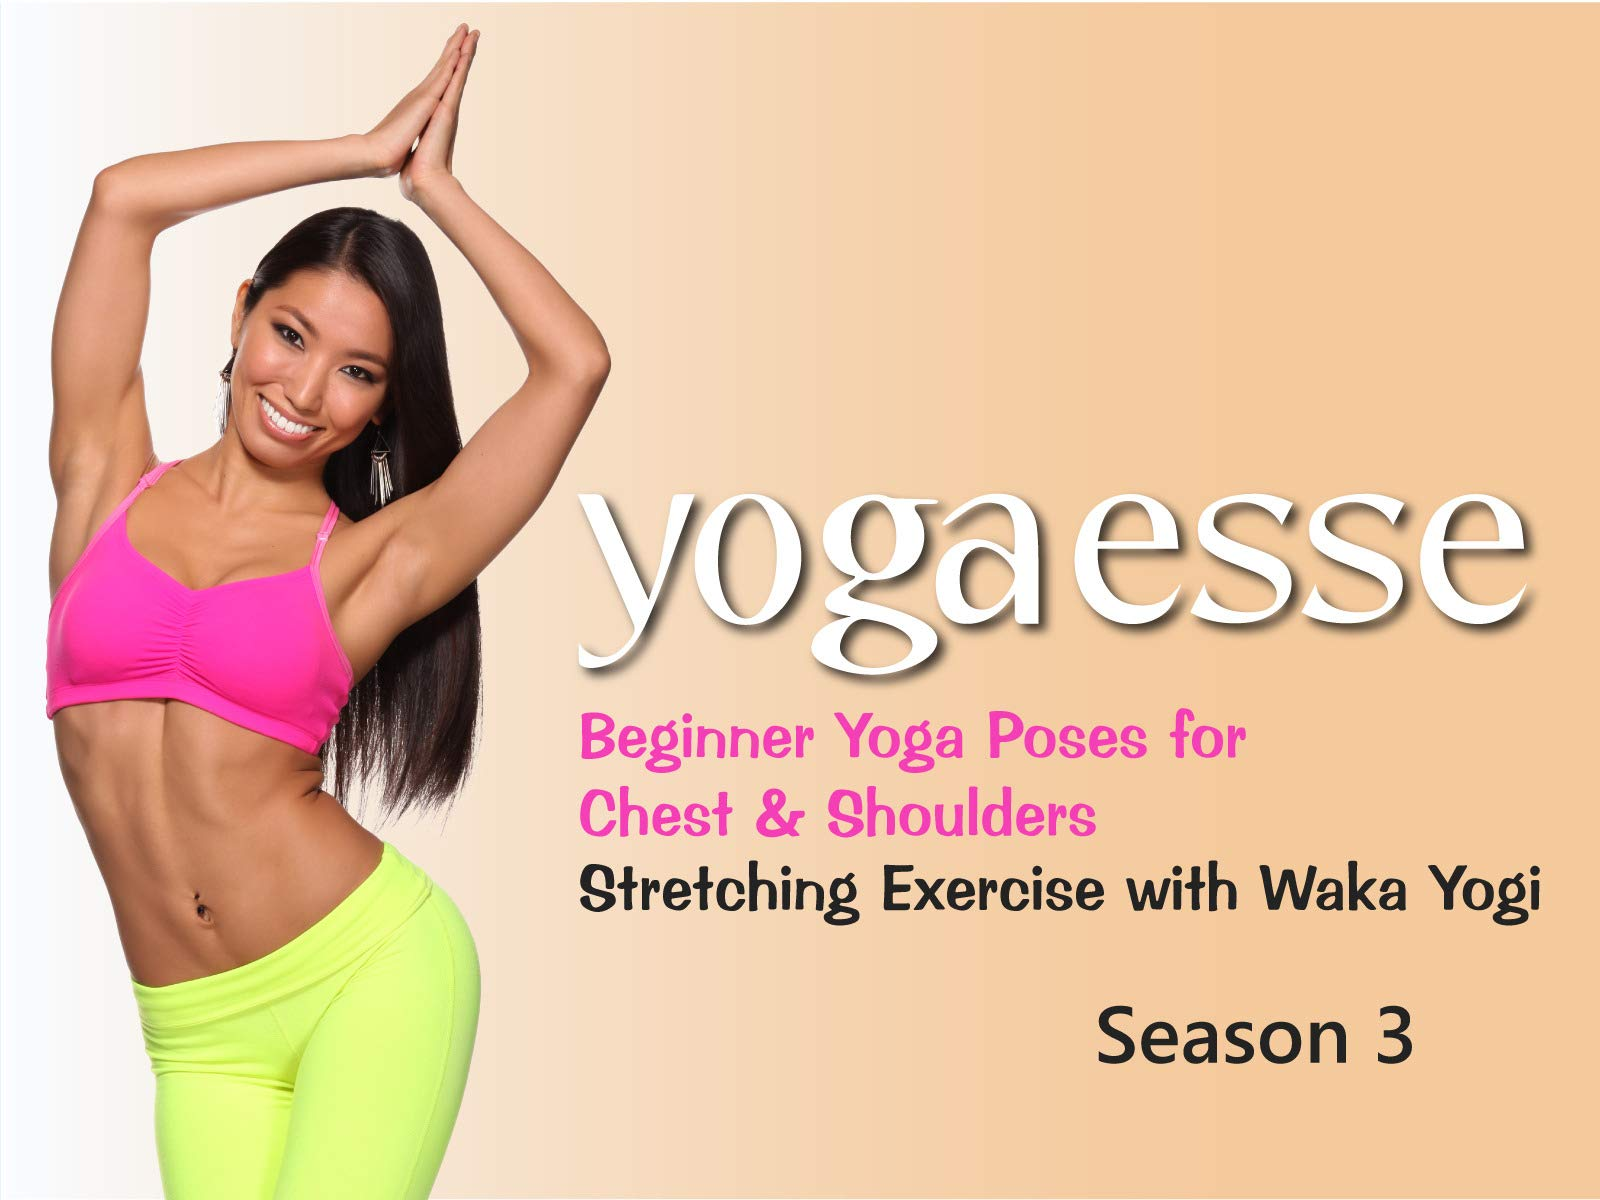 Watch Yogaesse Beginner Yoga Poses For Chest Shoulders Stretching Exercise With Waka Yogi Prime Video